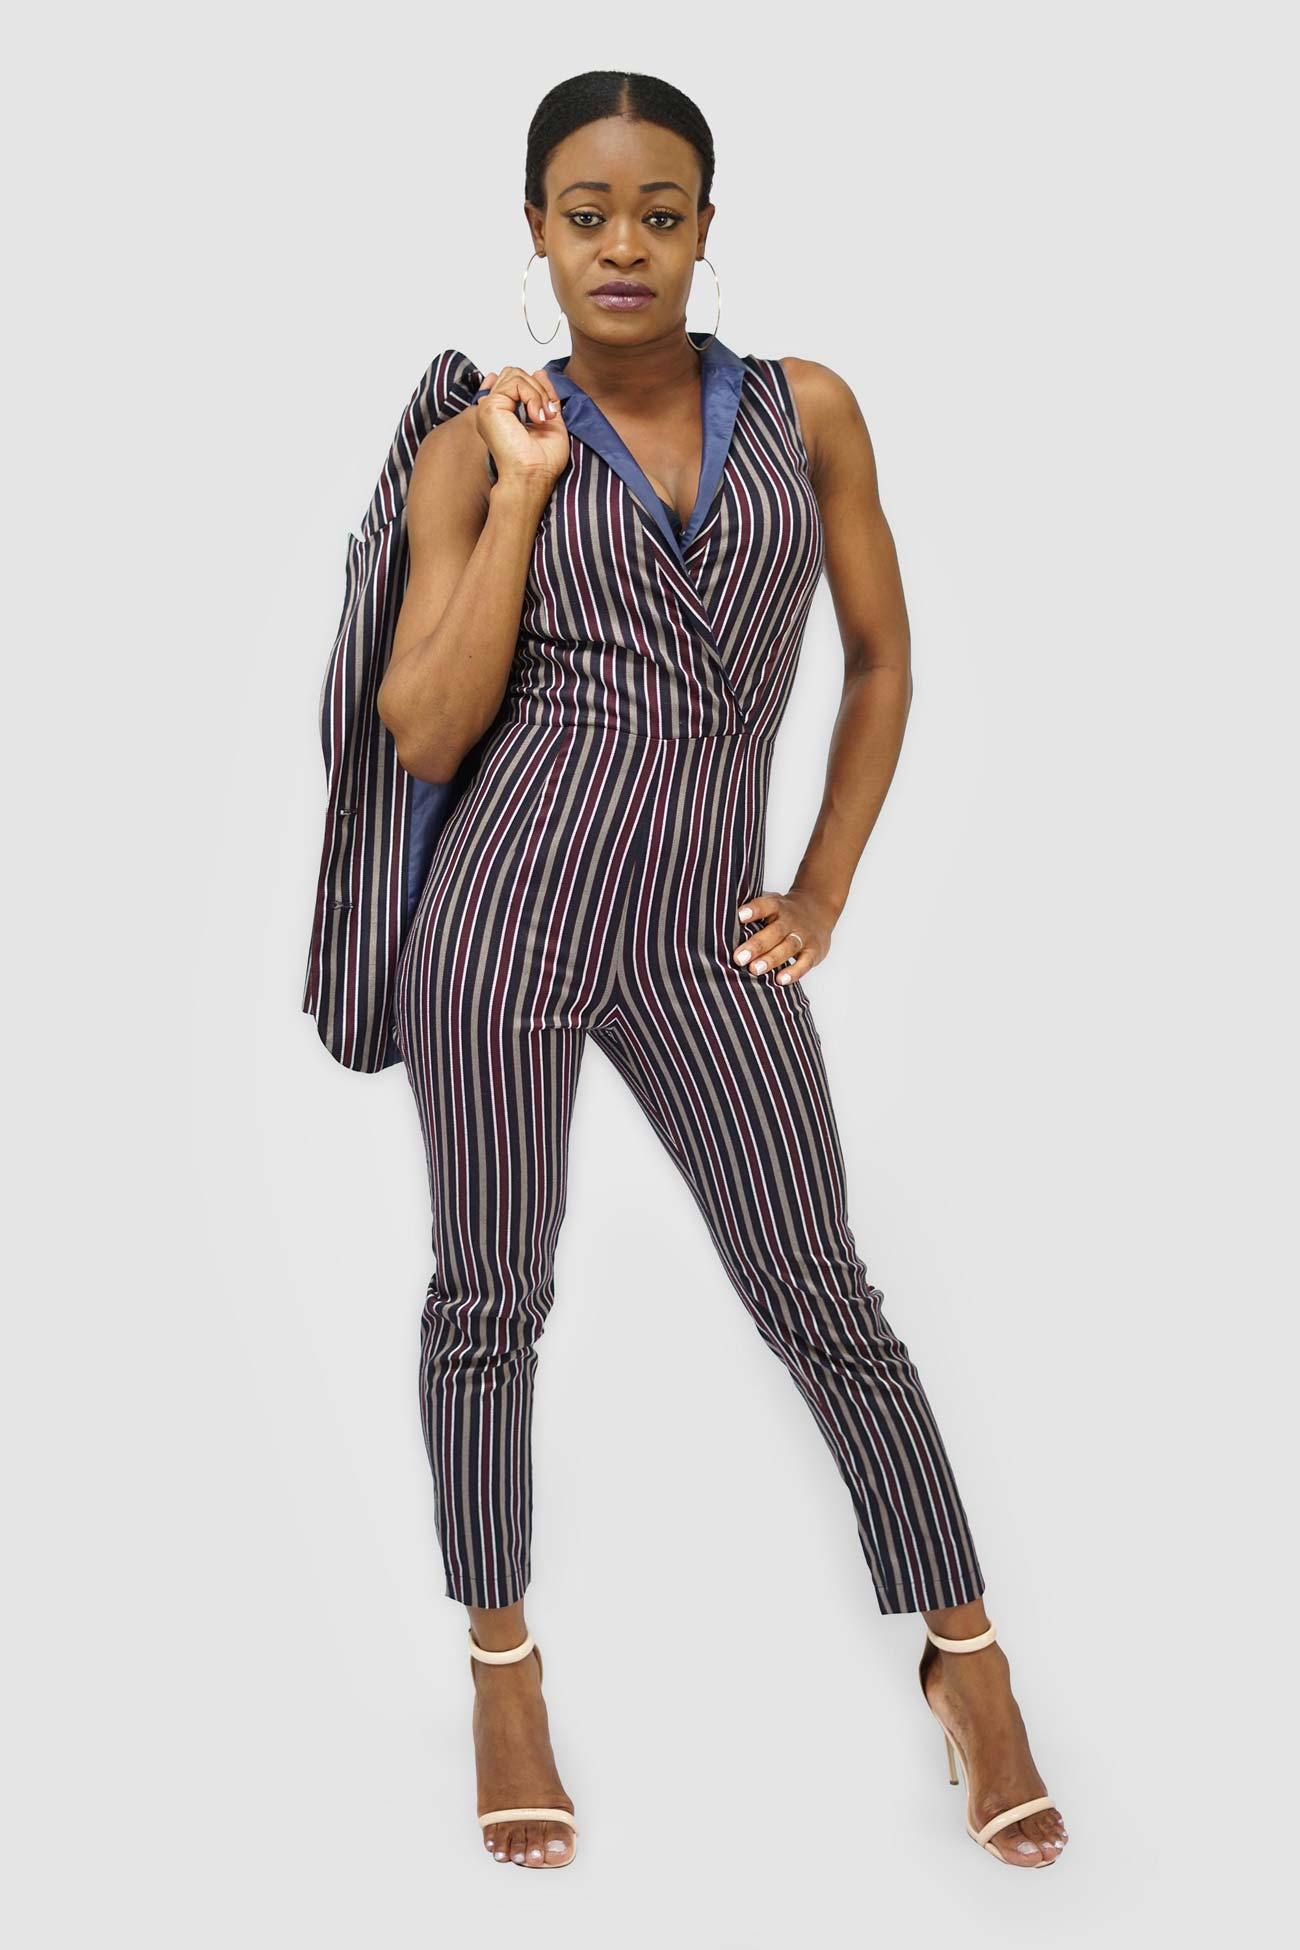 Jumpsuits | City Lights Boxster Suit_1 | Style & Suit